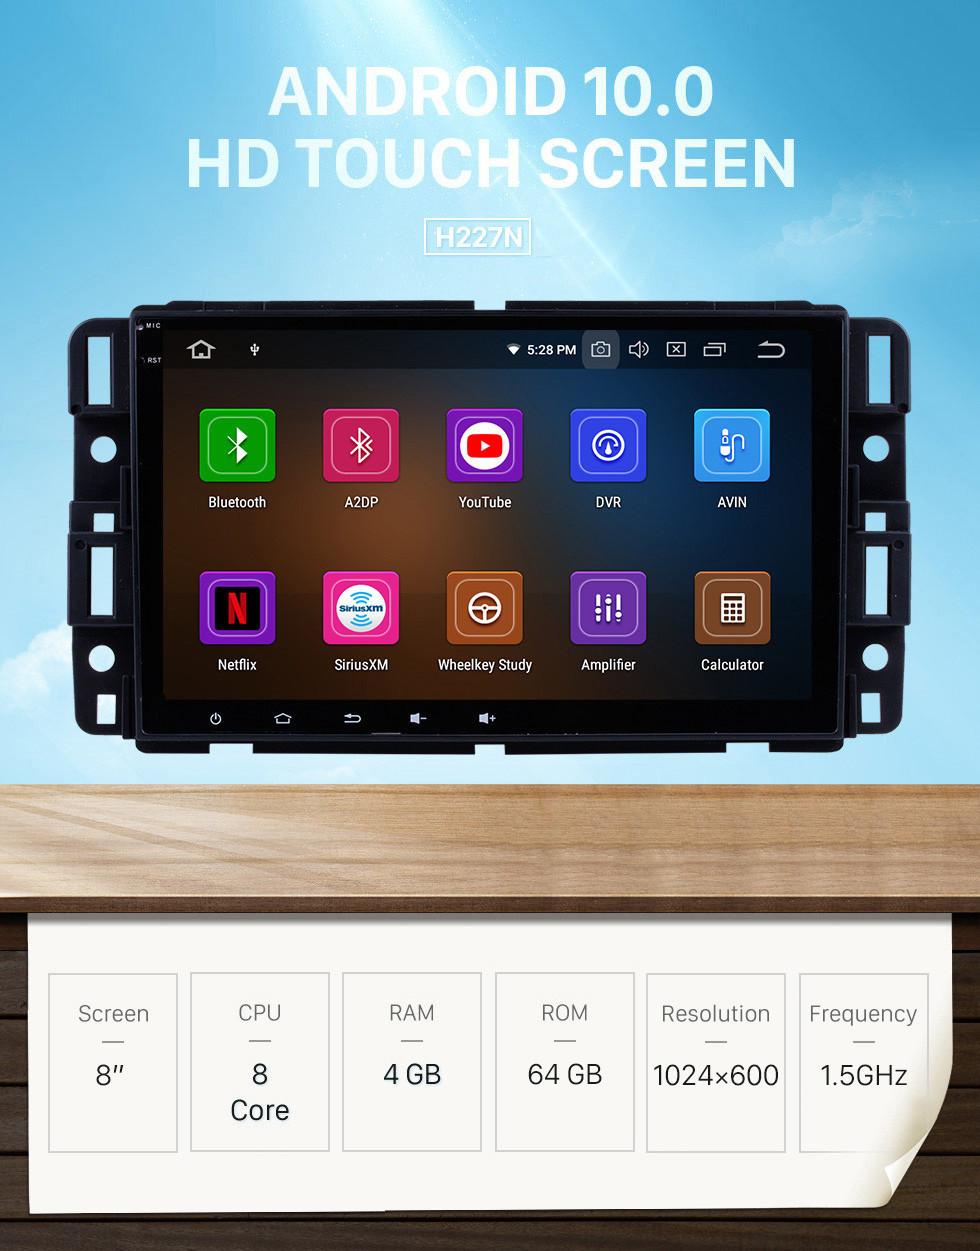 Seicane 8 Inch Android 10.0 HD Touchscreen Radio Head Unit For 2009 2010 2011 Chevrolet Chevy Traverse Car Stereo GPS Navigation System Bluetooth Phone WIFI Support Digital TV DVR USB DAB+ OBDII Steering Wheel Control Rearview Camera